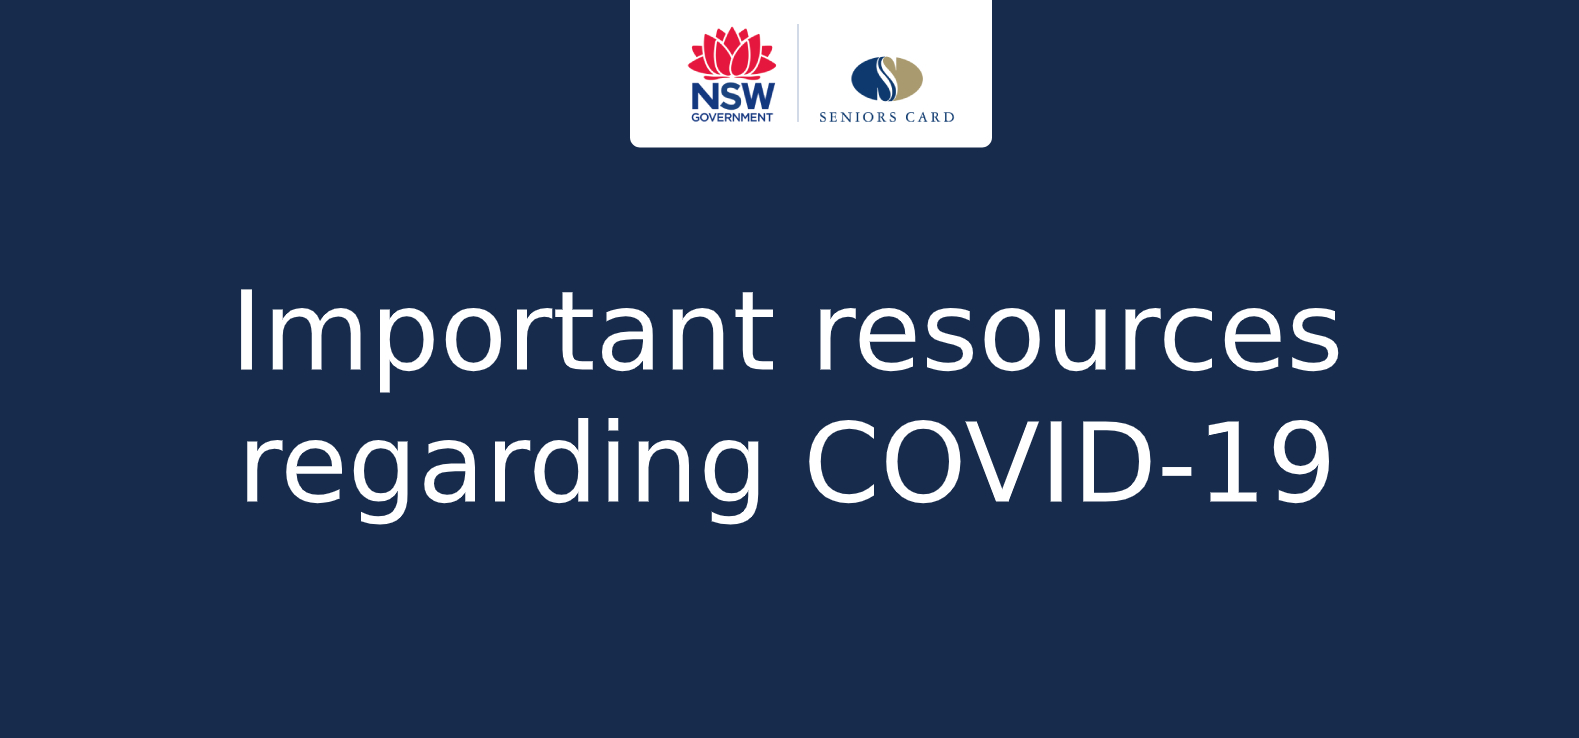 Important resources regarding COVID-19 (Novel Coronavirus)